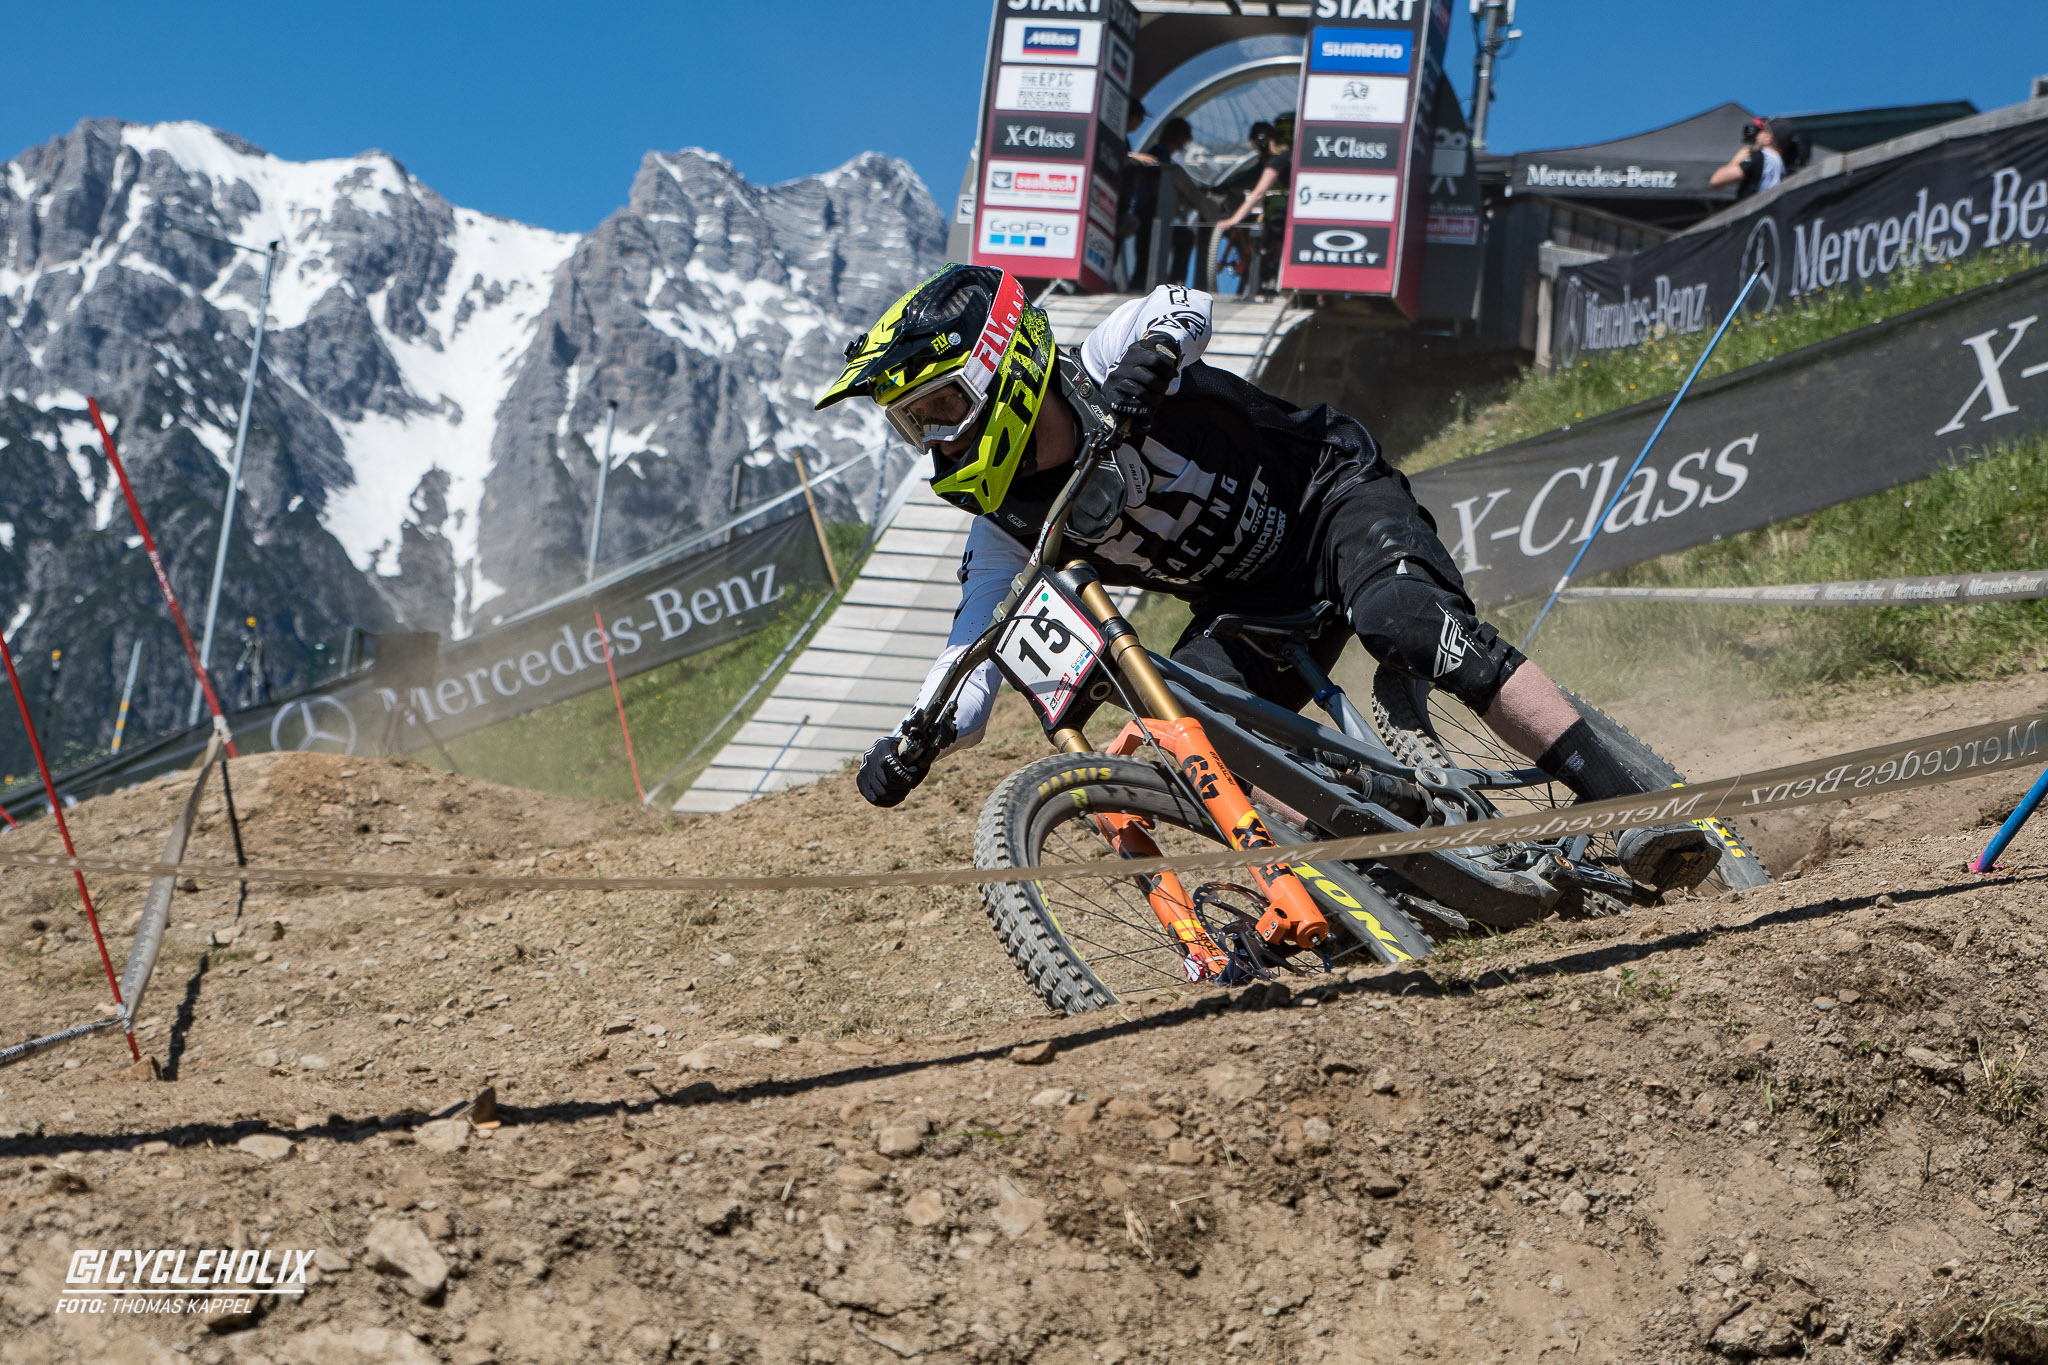 2019 Downhill Worldcup Leogang Finale Action B 1 Cycleholix